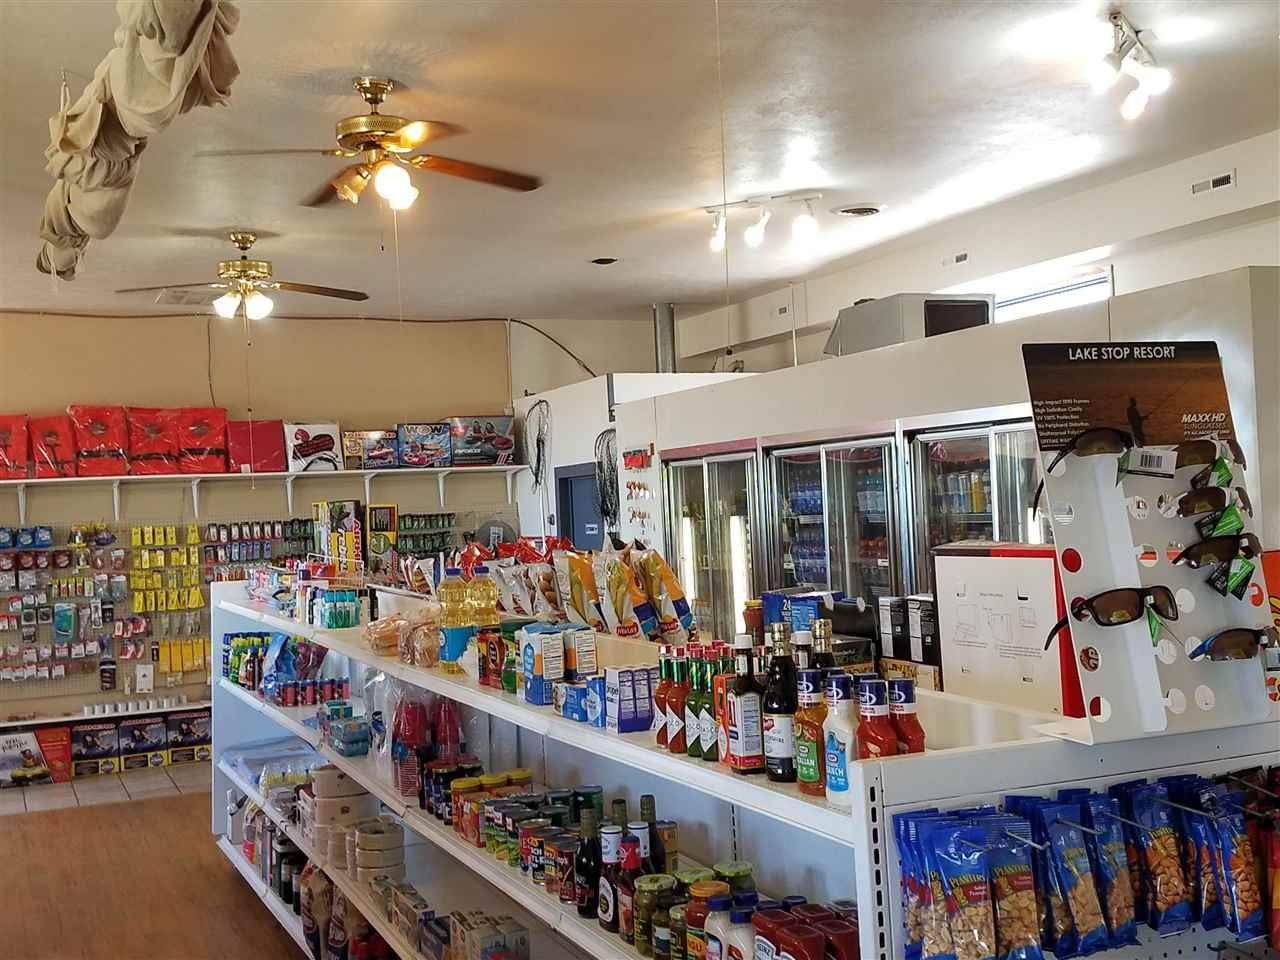 C-Store: Beverages/Alcohol, Snacks, Fishing Licens